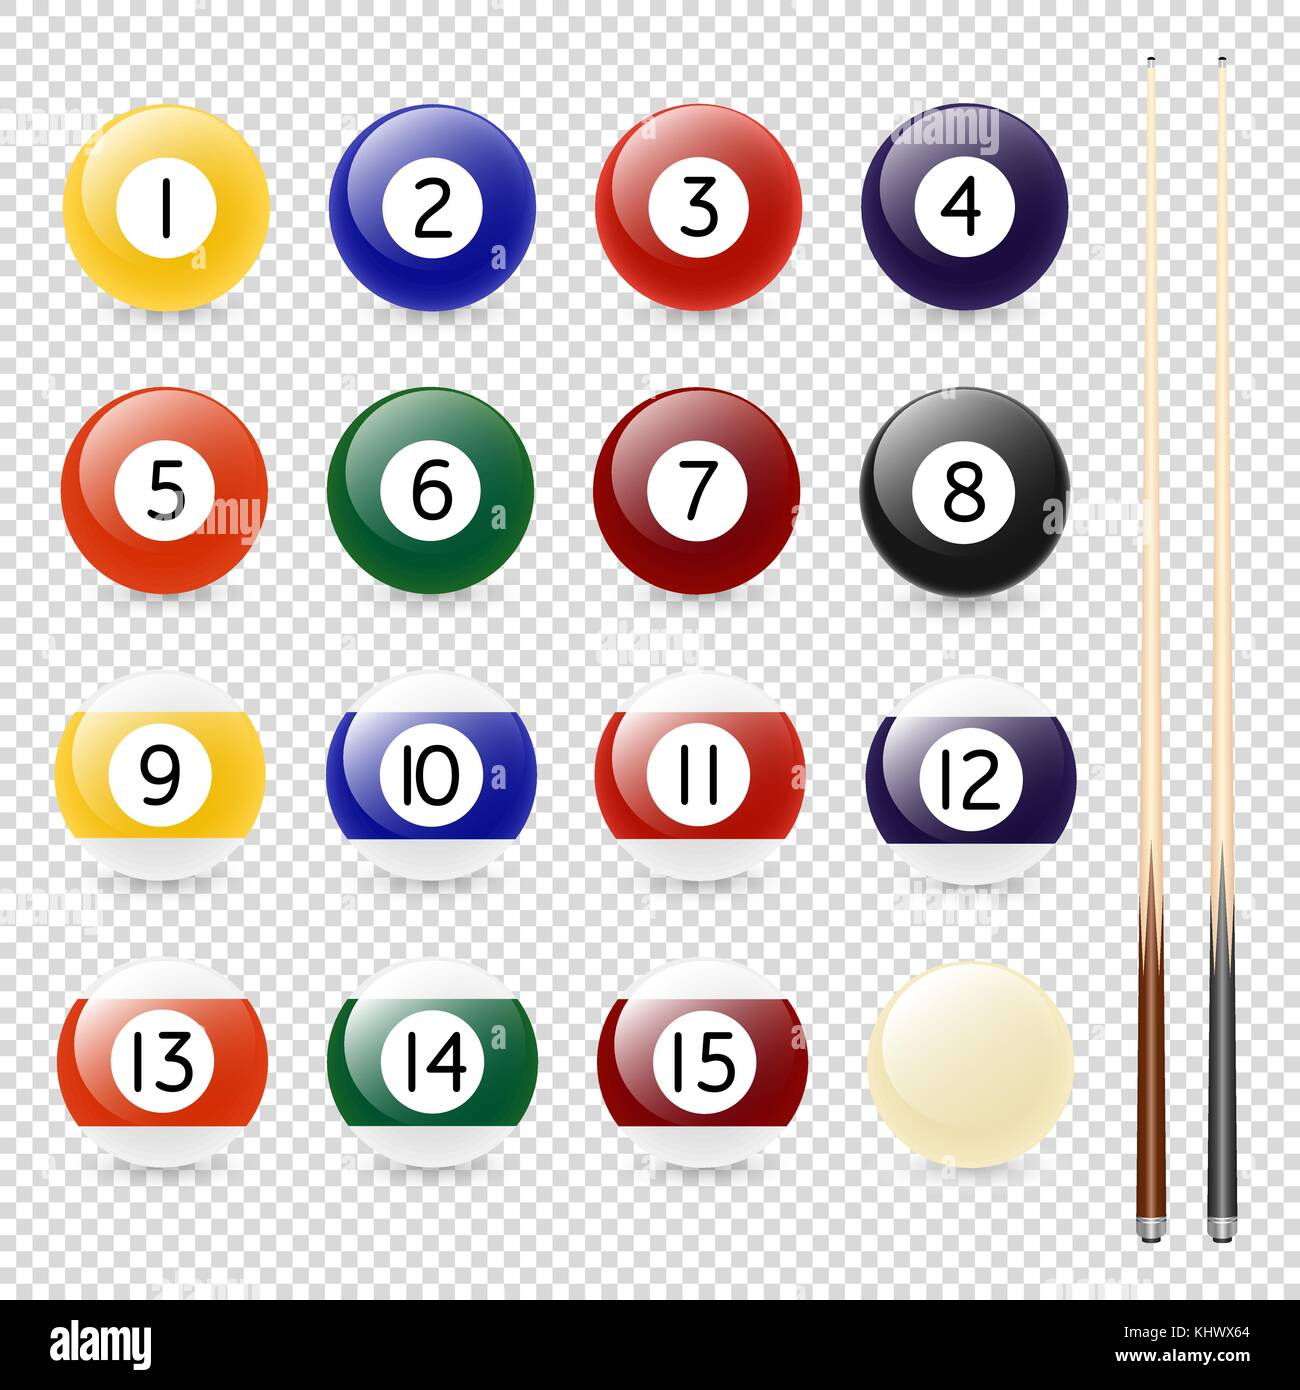 Vector realistic pool - billiard balls and cue closeup isolated on transparent background. Design template in EPS10. - Stock Vector